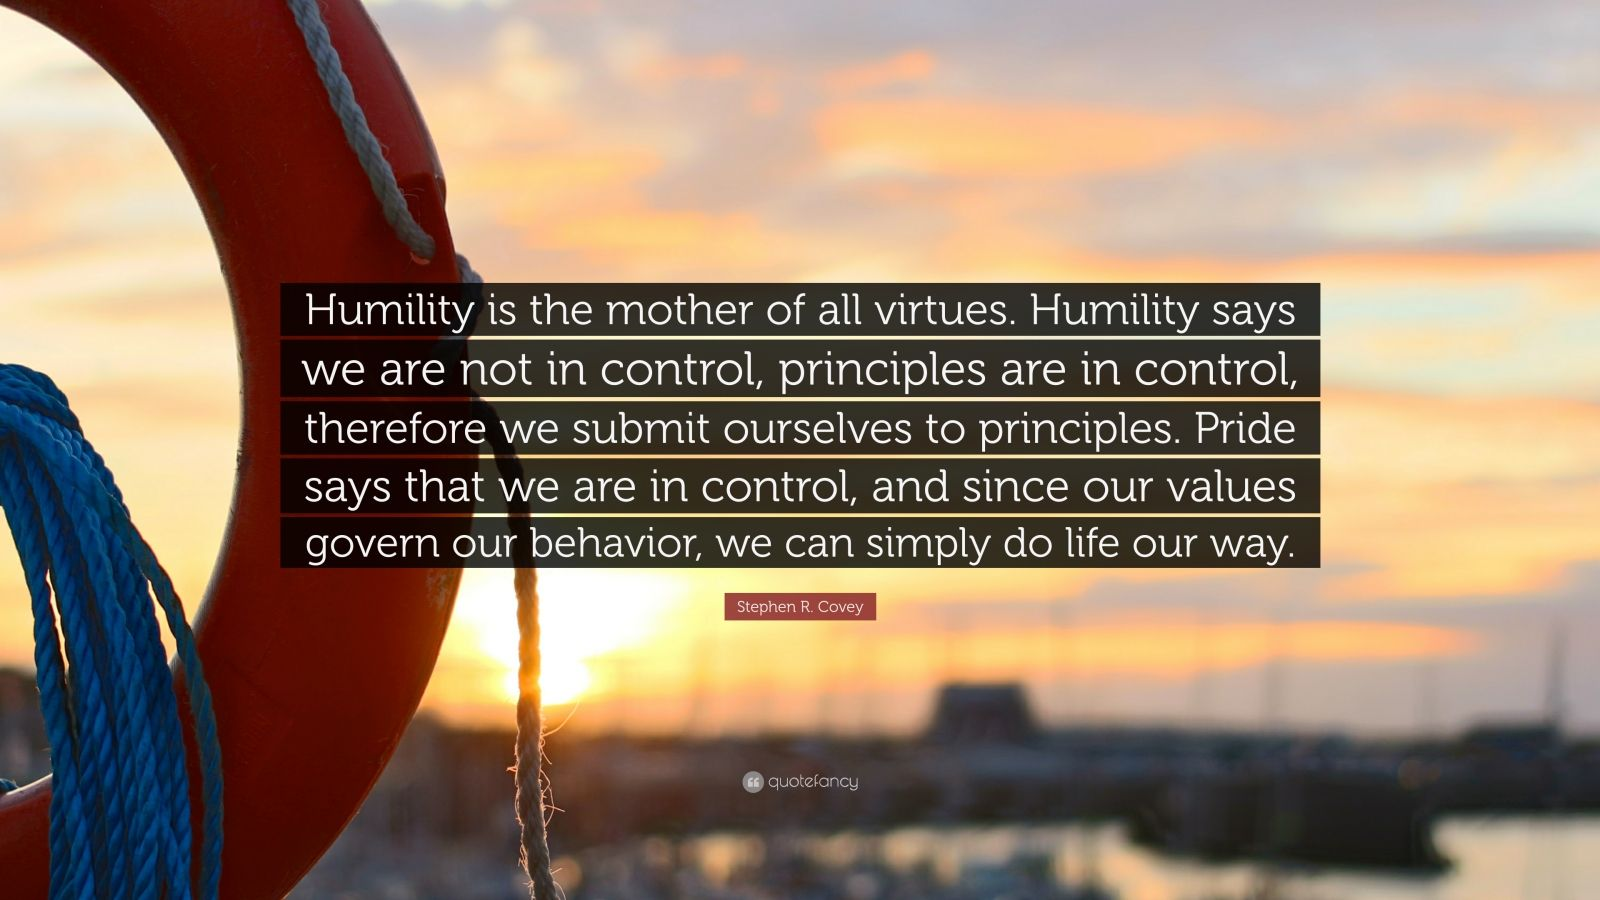 """essay on humility is the mother of all virtues Humility, the mother of all virtue as st john chrysostom once remarked, for just as pride is the root of all sin, so """"humility is the root, mother."""